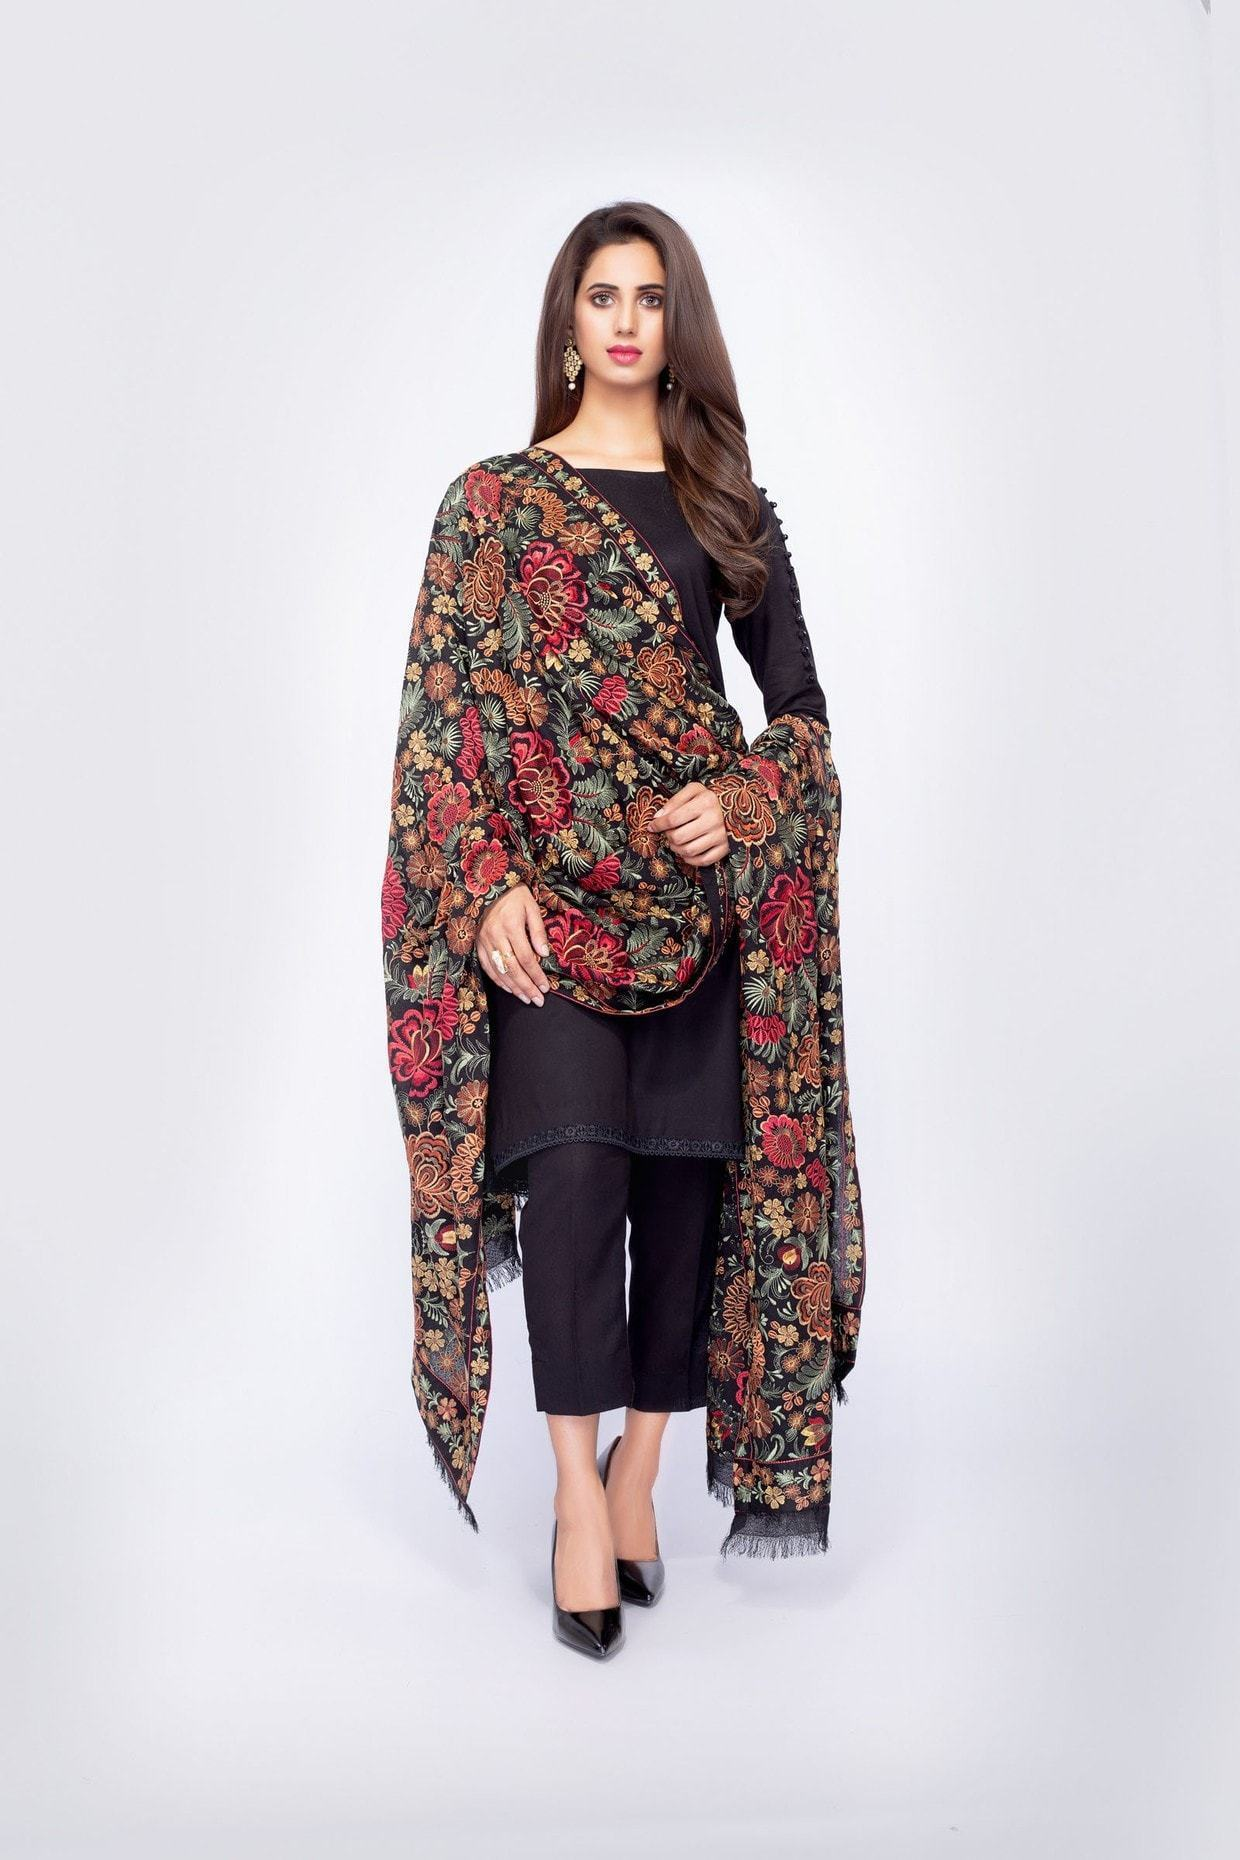 SARINNAH PREMIUM D71-FORMAL HEAVY EMBROIDED KARANDI LAWN SHAWL. - gracestore.pk